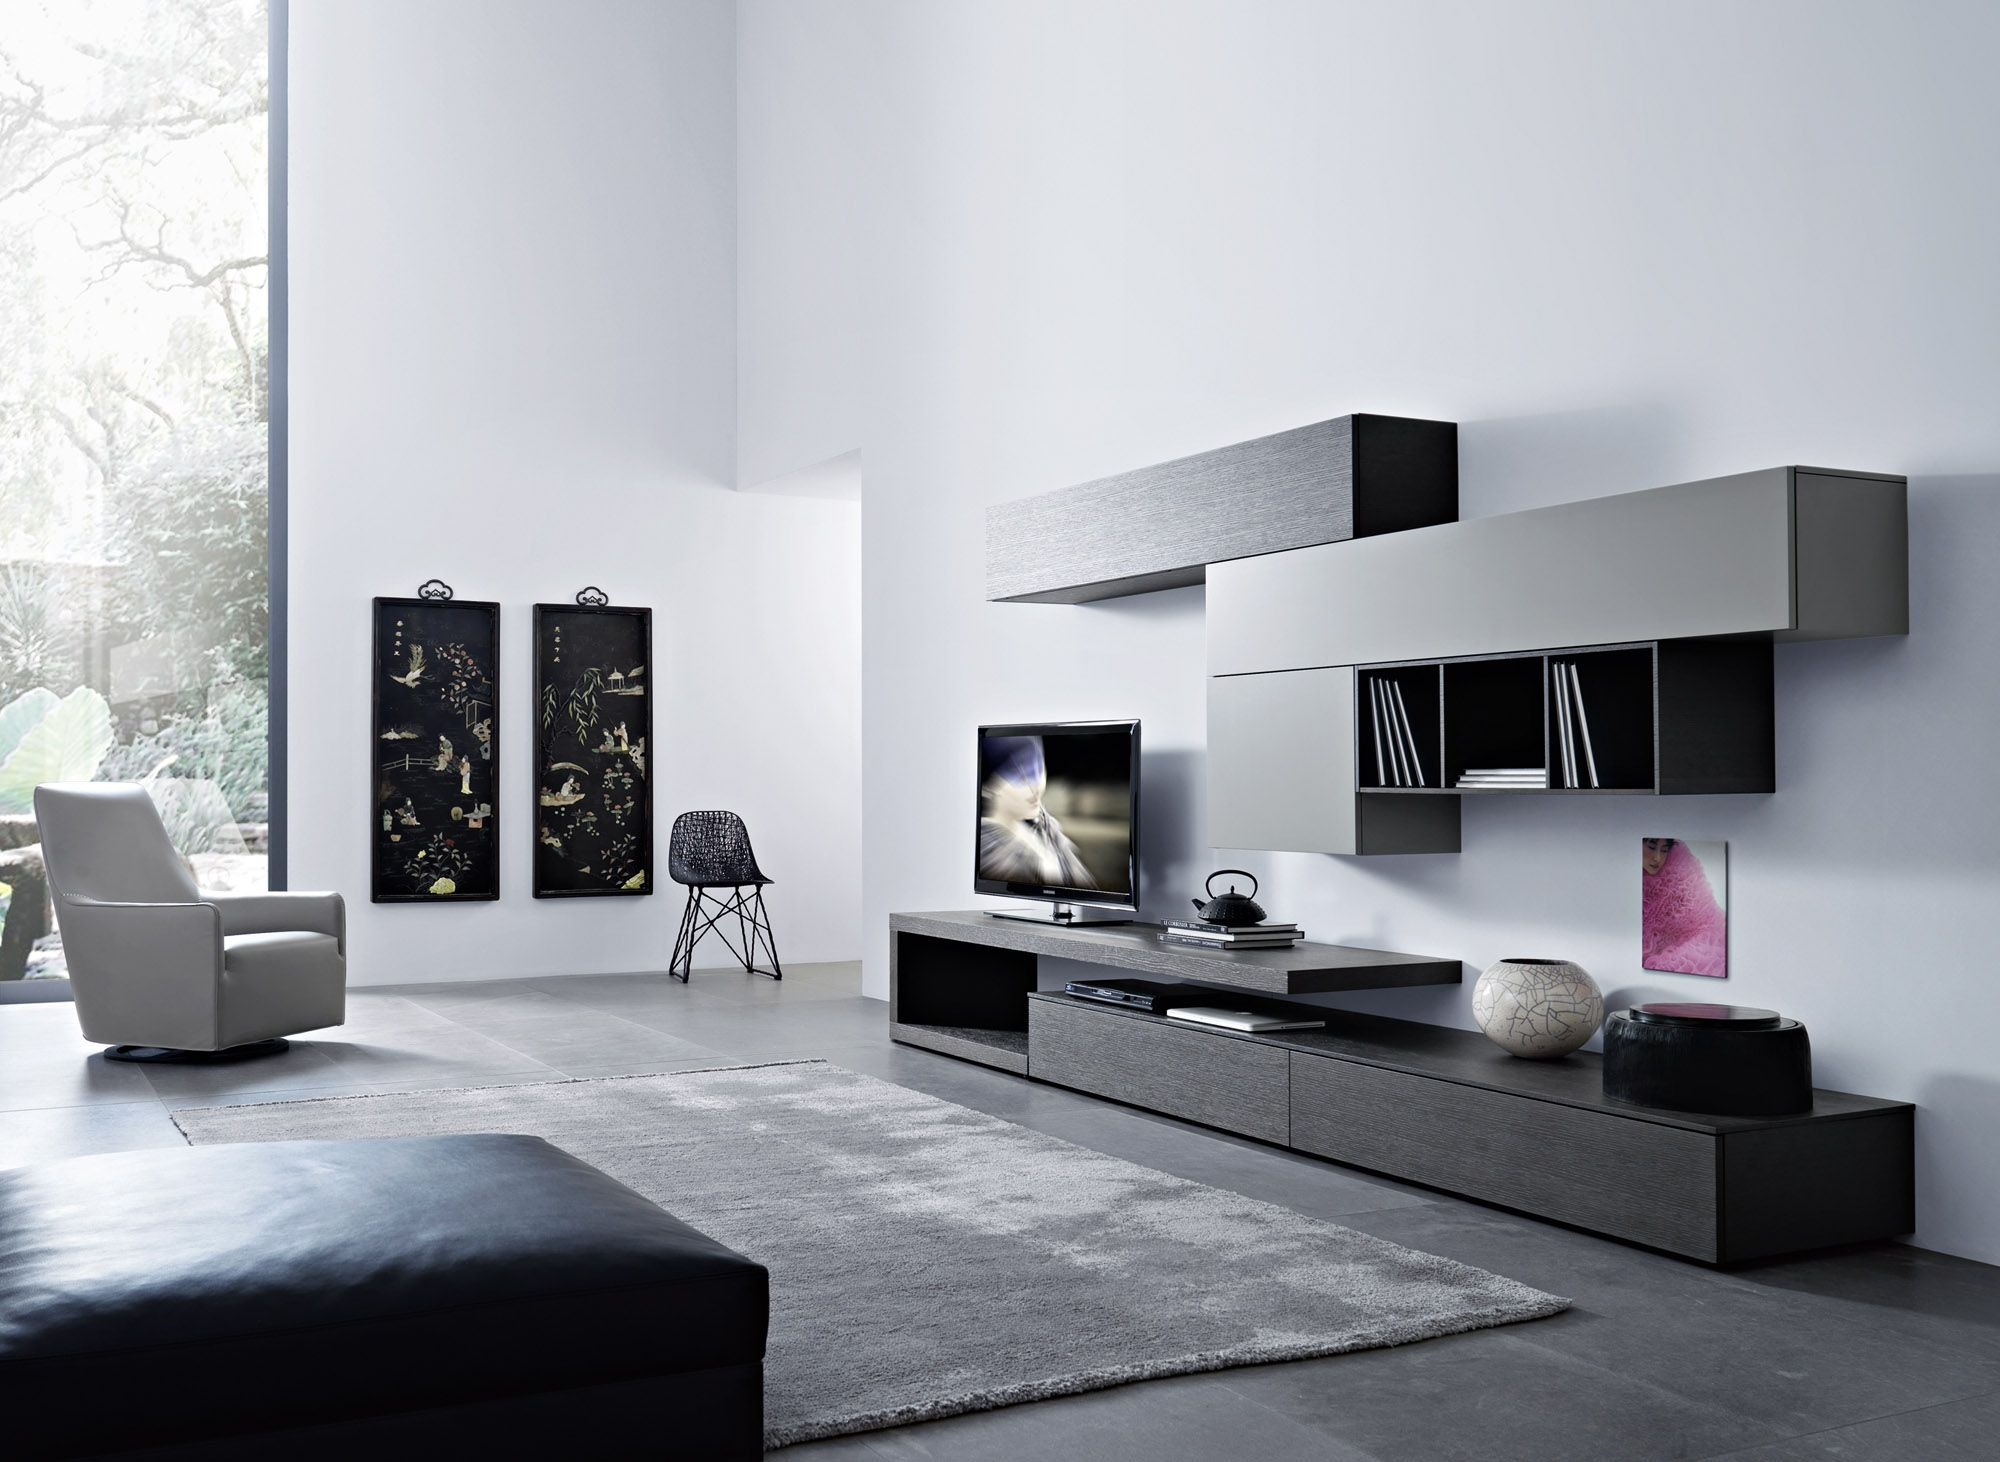 wohnwand sangiacomo inspiration auslaufmodelle. Black Bedroom Furniture Sets. Home Design Ideas